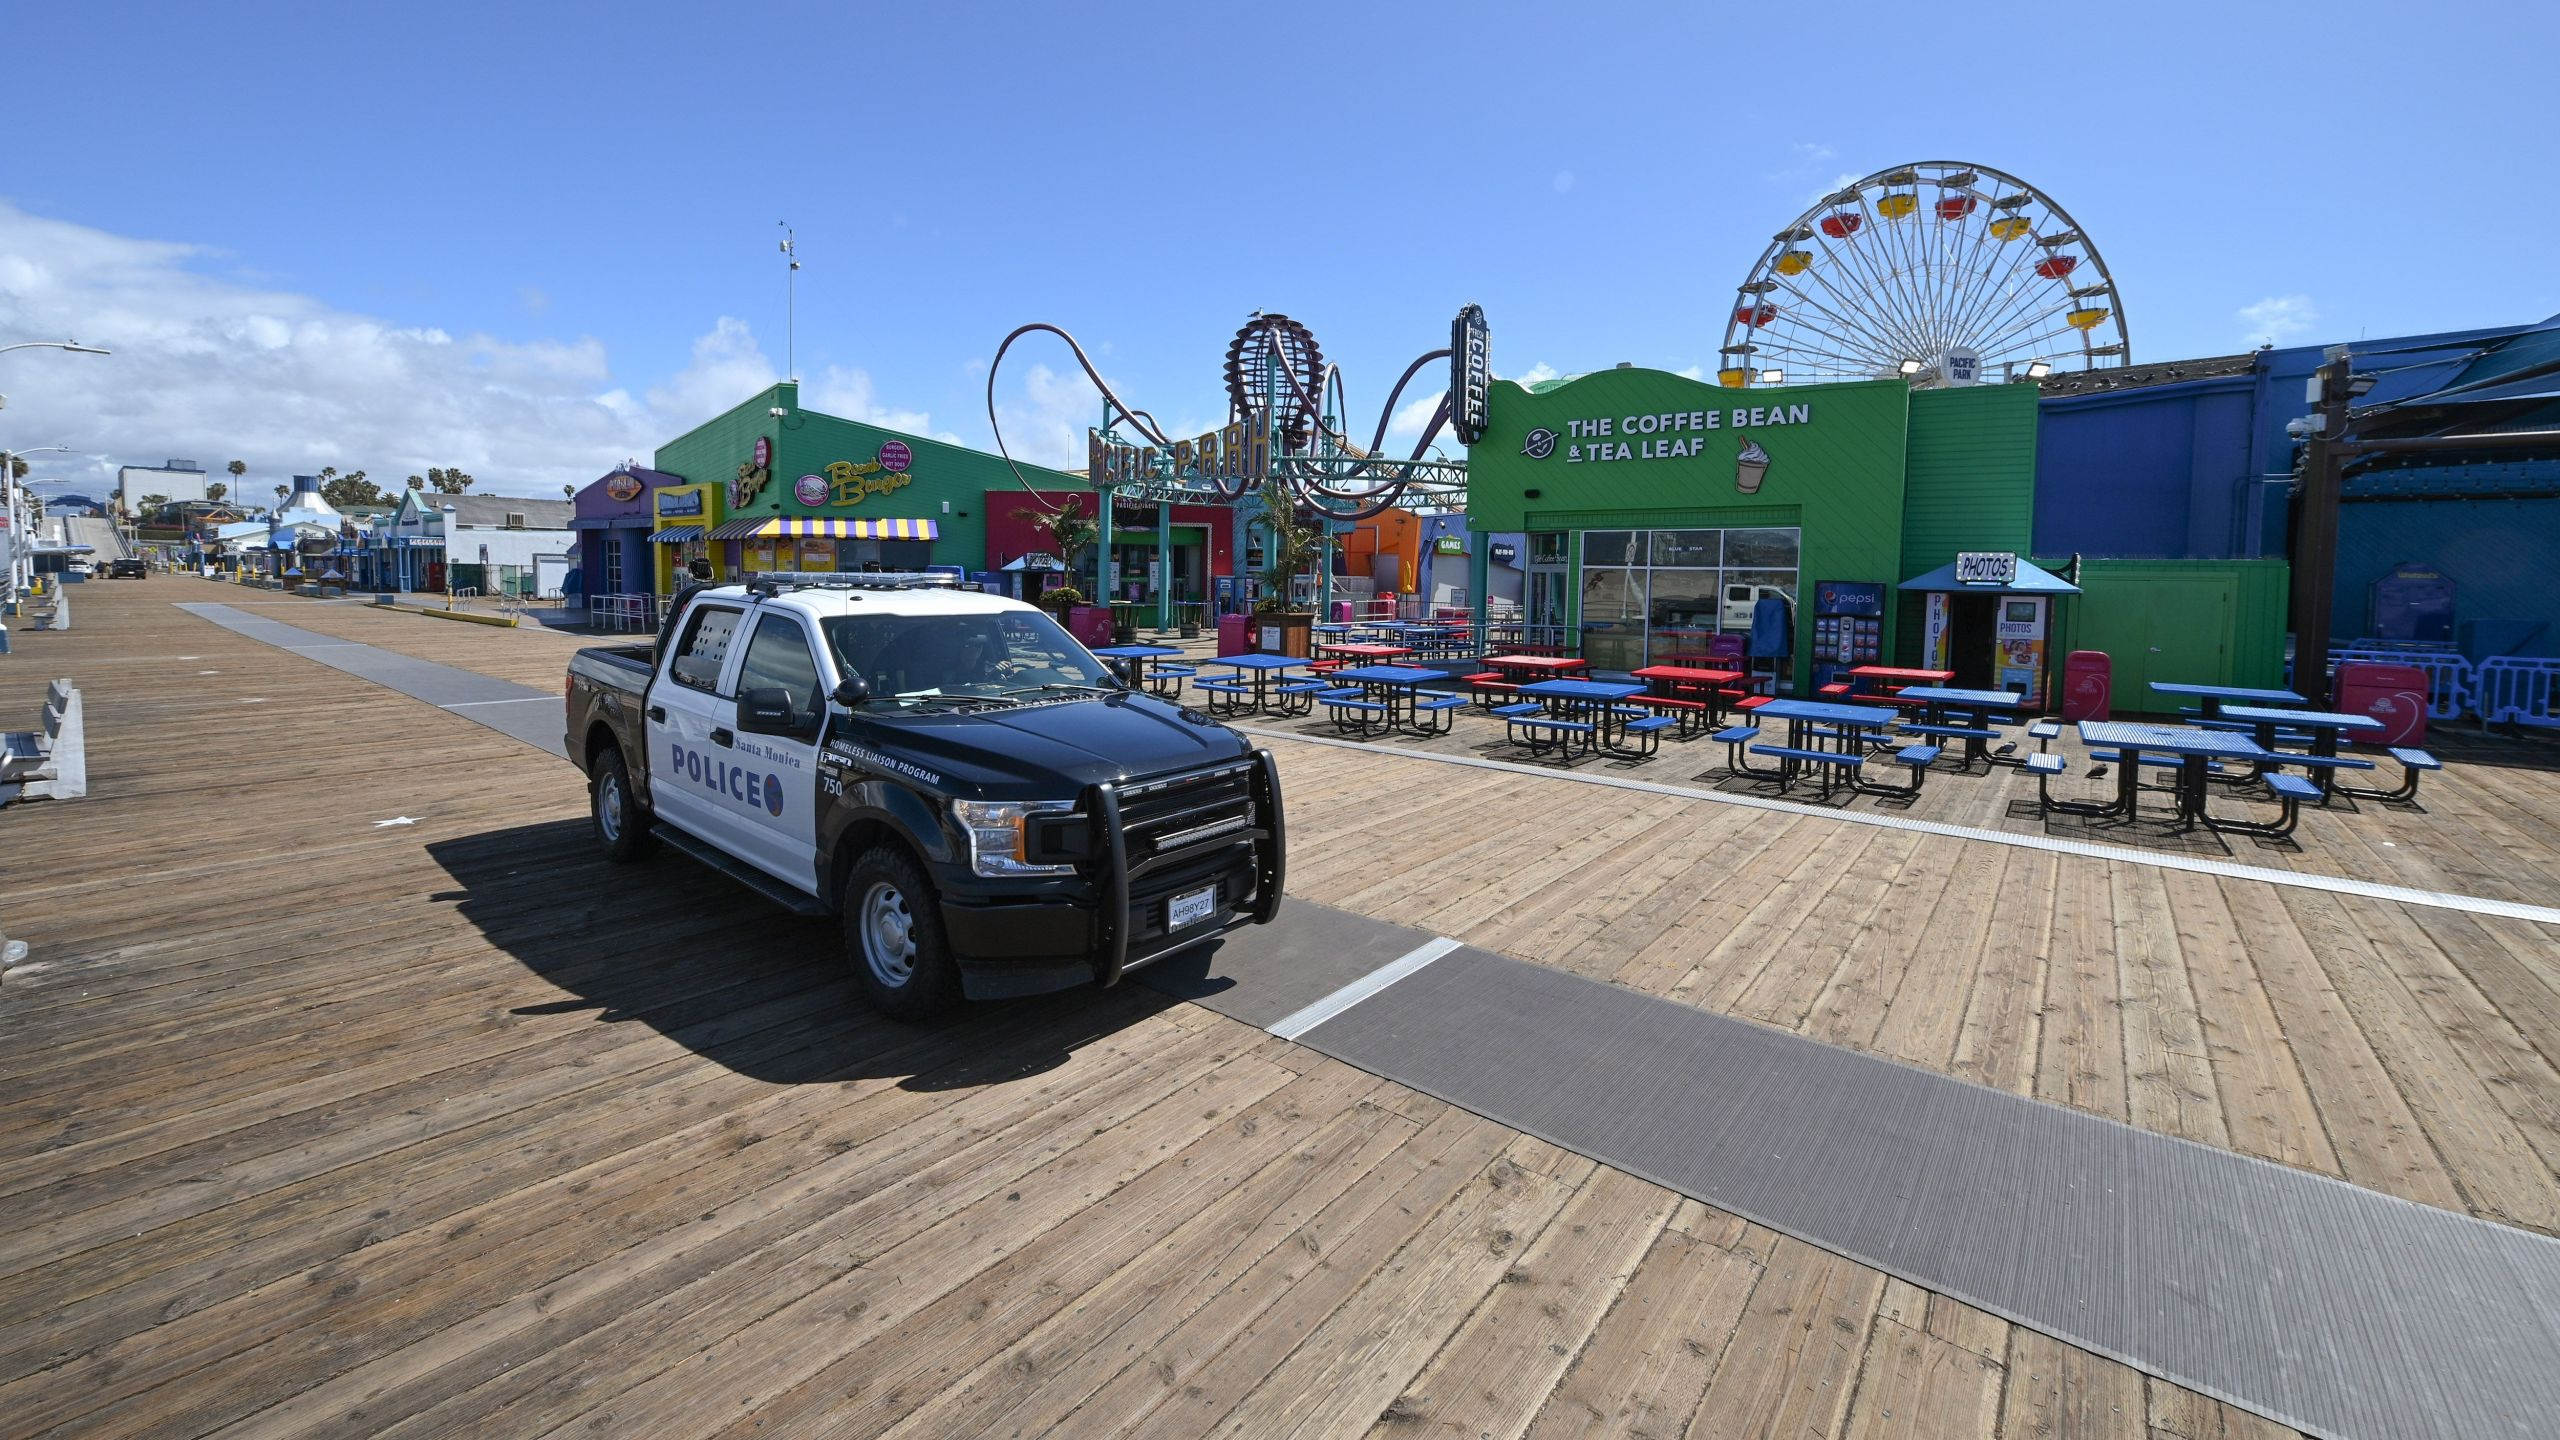 Police patrol an empty Santa Monica Pier in Santa Monica, California on March 23, 2020, as people are encouraged to stay at home to halt the spread of the novel coronavirus, COVID-19. (ROBYN BECK/AFP via Getty Images)